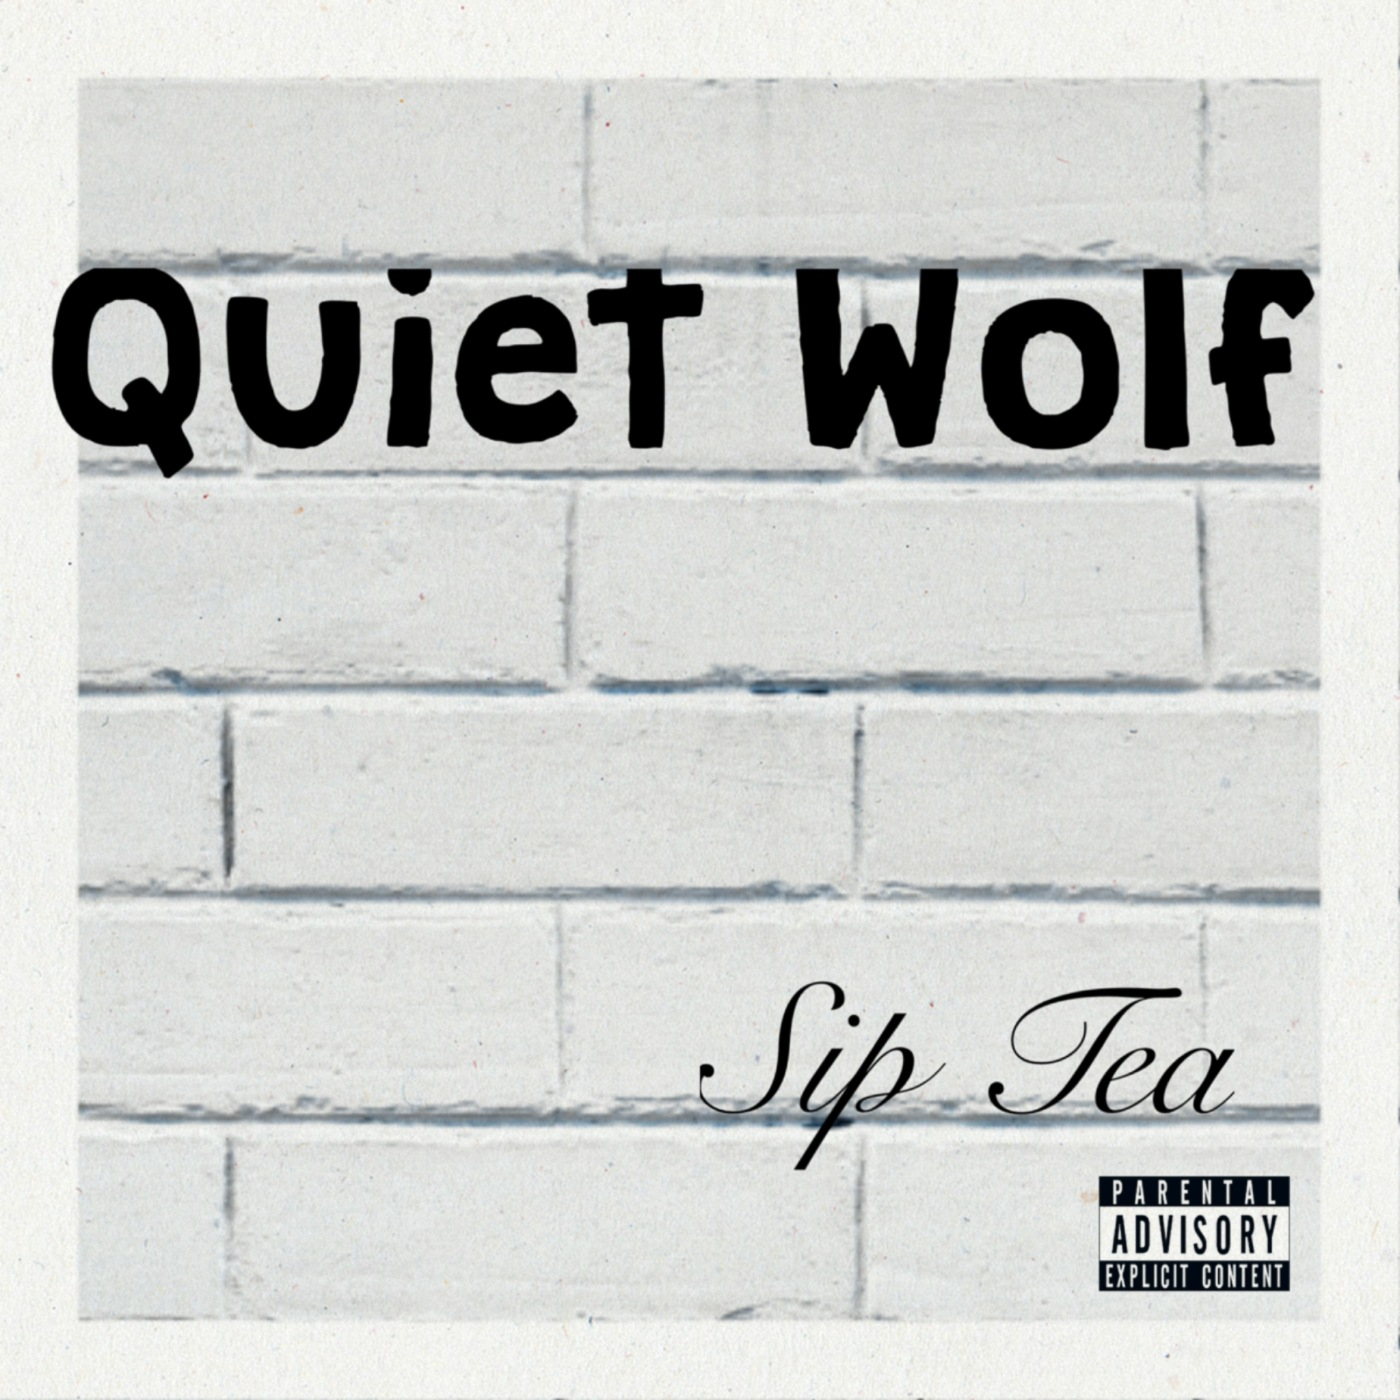 Quiet Wolf on spotify, Queit Wolf Sip Tea, Bad Ass!, Netflix and Chill, Straight Fire, I Gotta Boogie, Neo-Funk, Neo-Soul